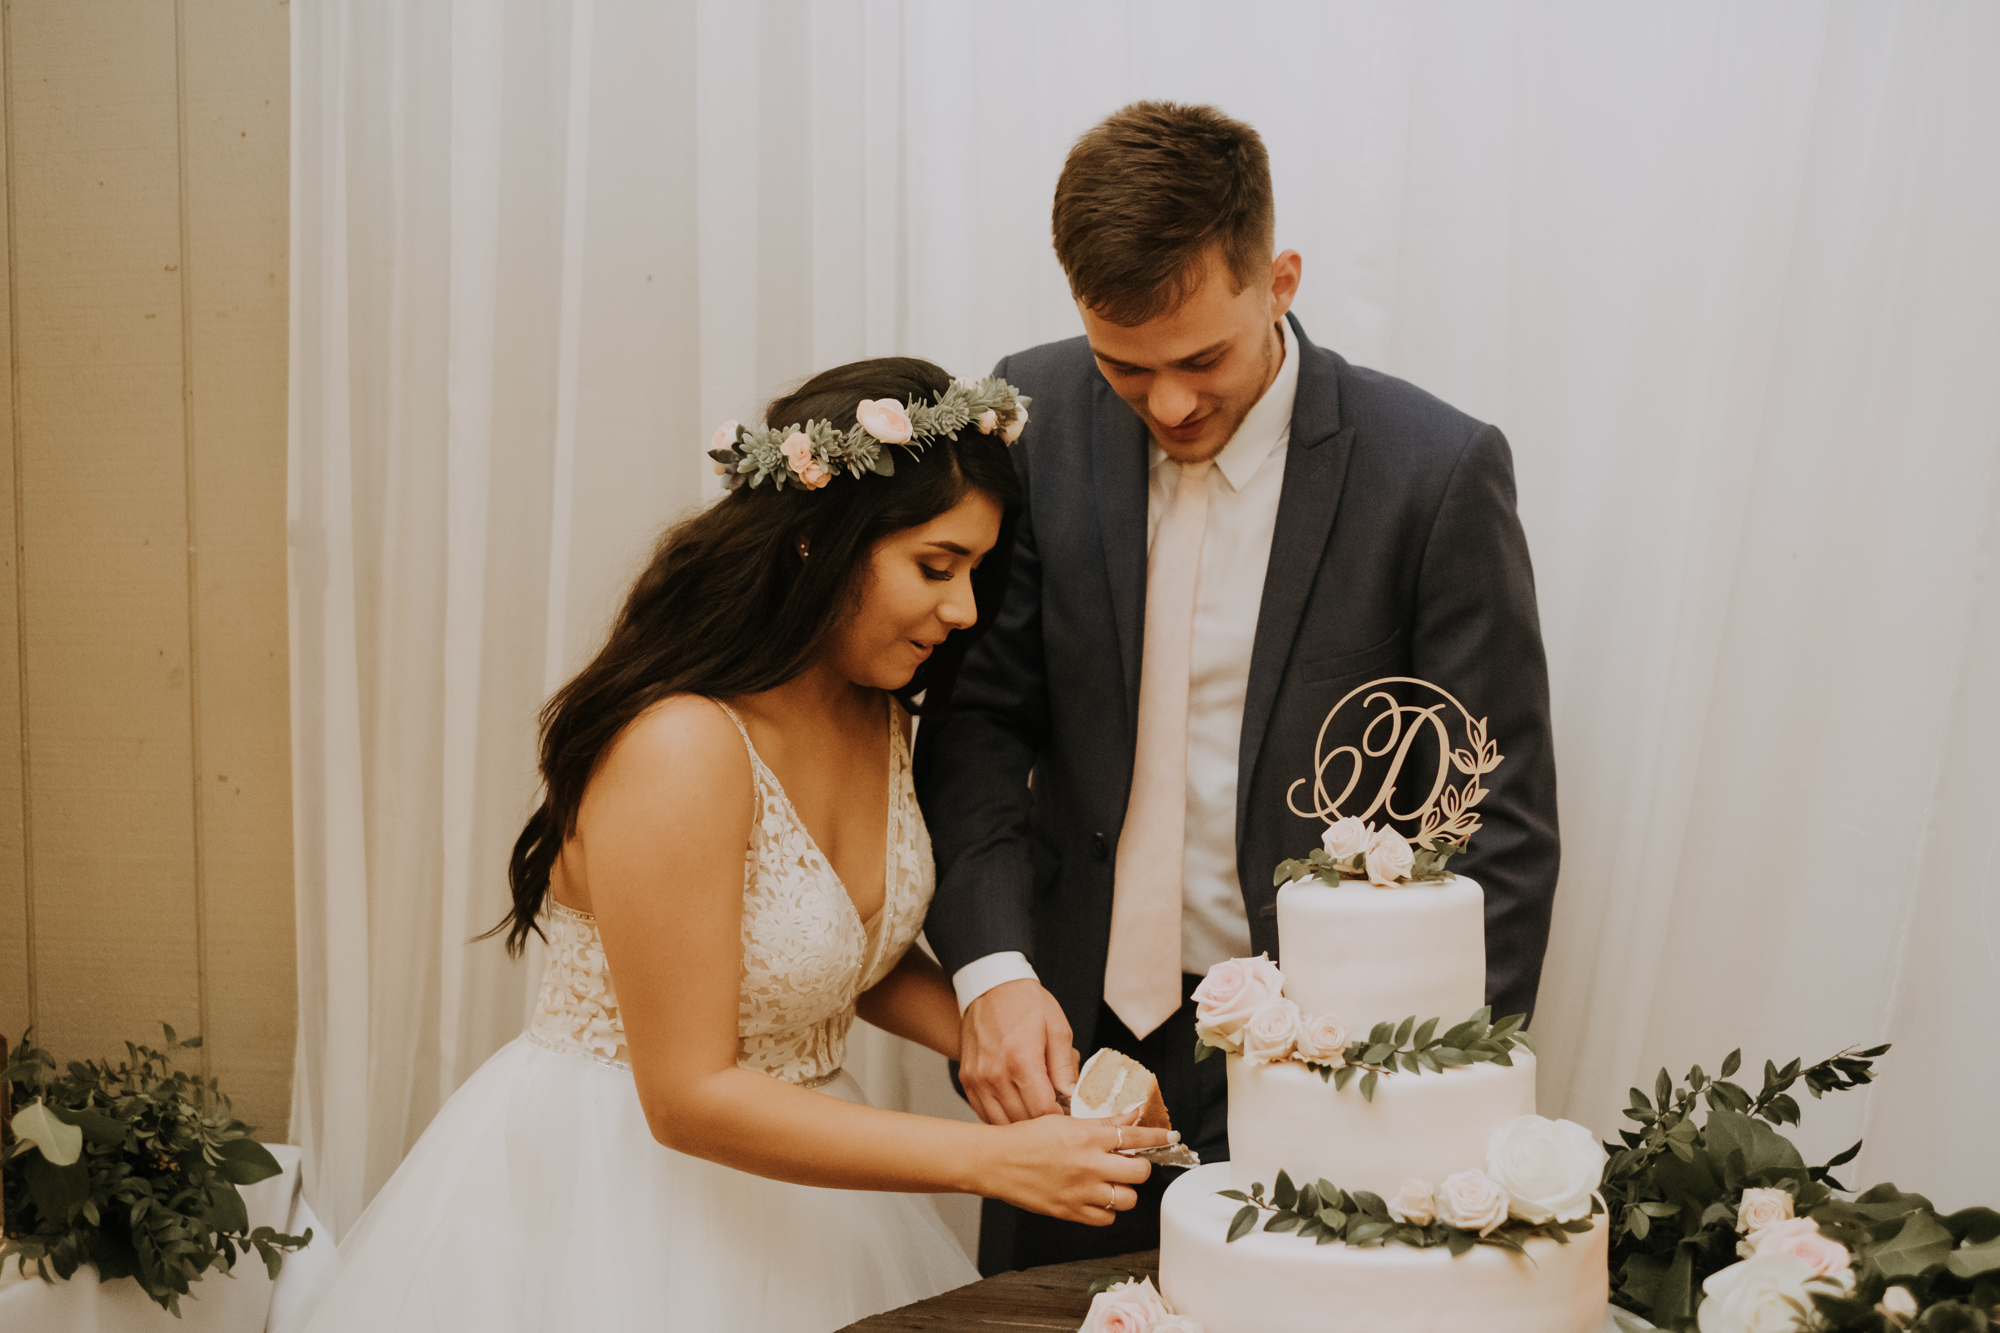 cake cutting | elegant white and gold cake | cutting the cake | elegant boho cake